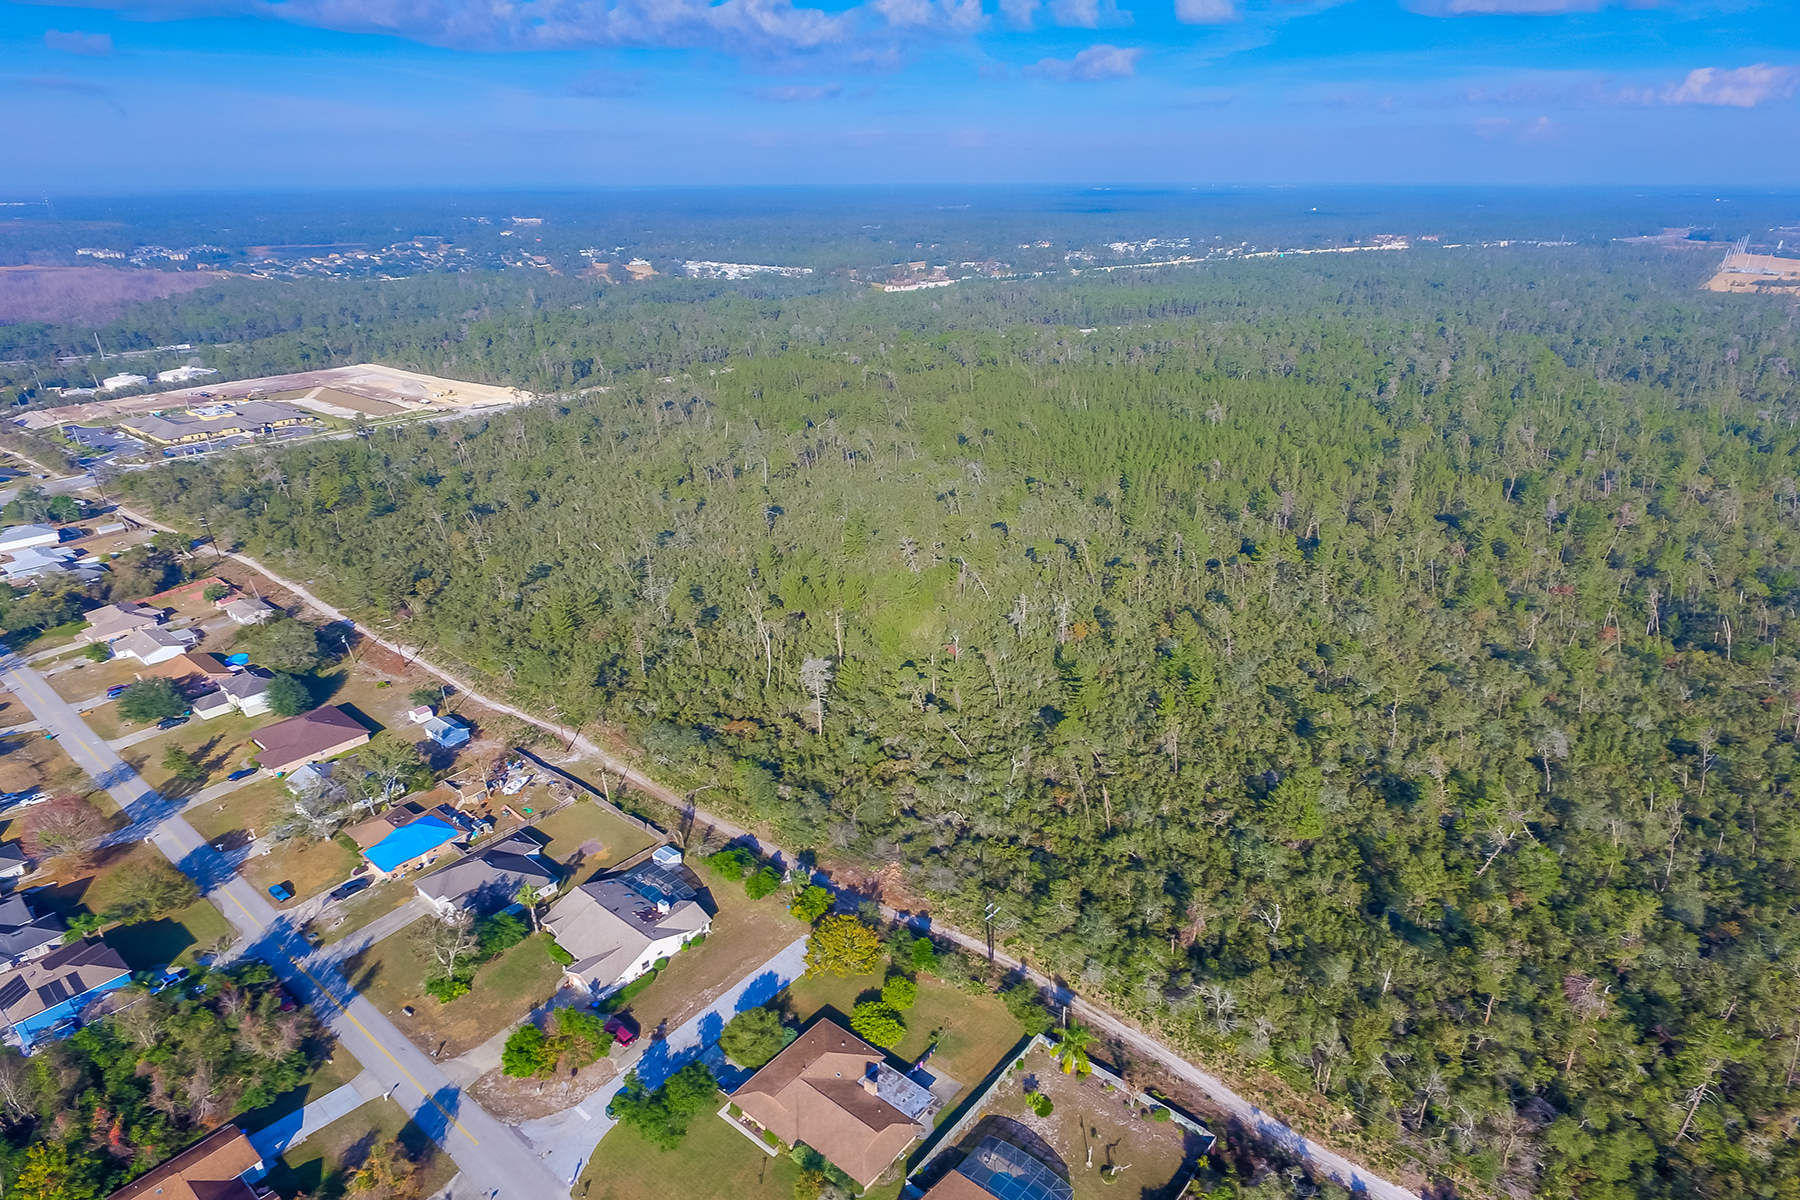 Land for Sale at NORTH ORLANDO- DELTONA E Normandy Blvd x Deltona, Florida 32725 United States